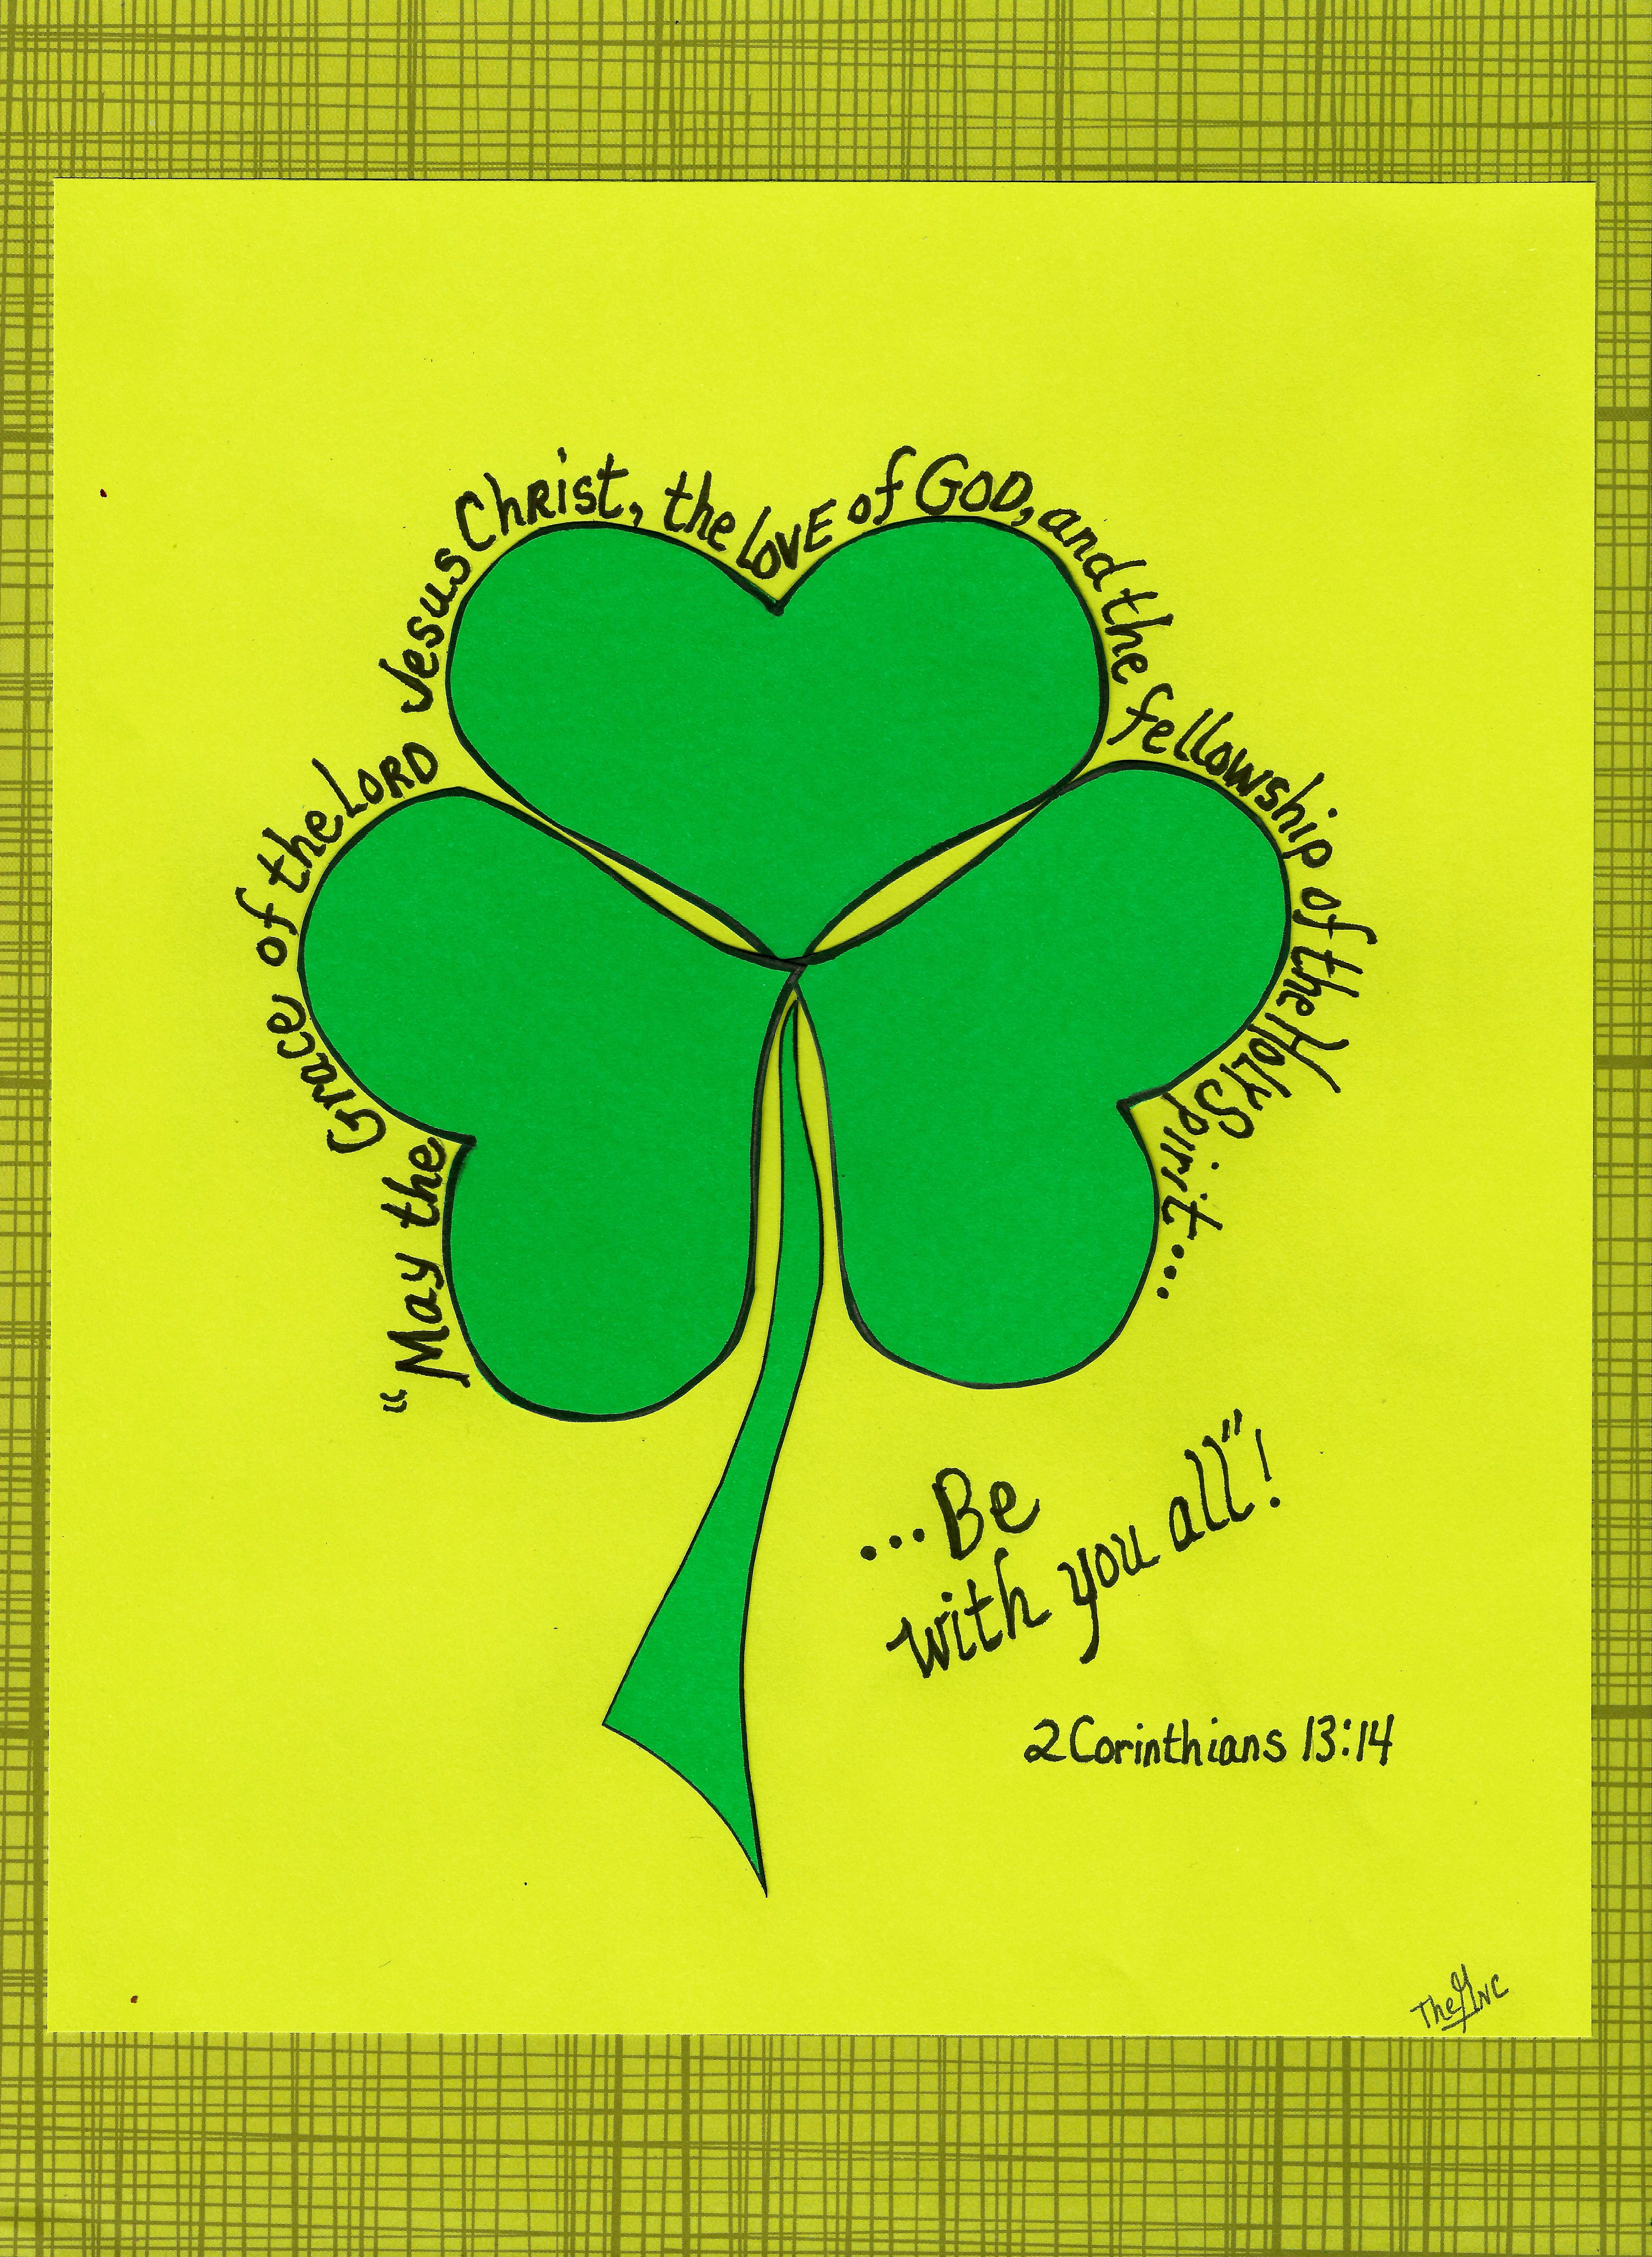 St Patrick Used A 3 Leaf Clover To Teach About The Holy Trinity